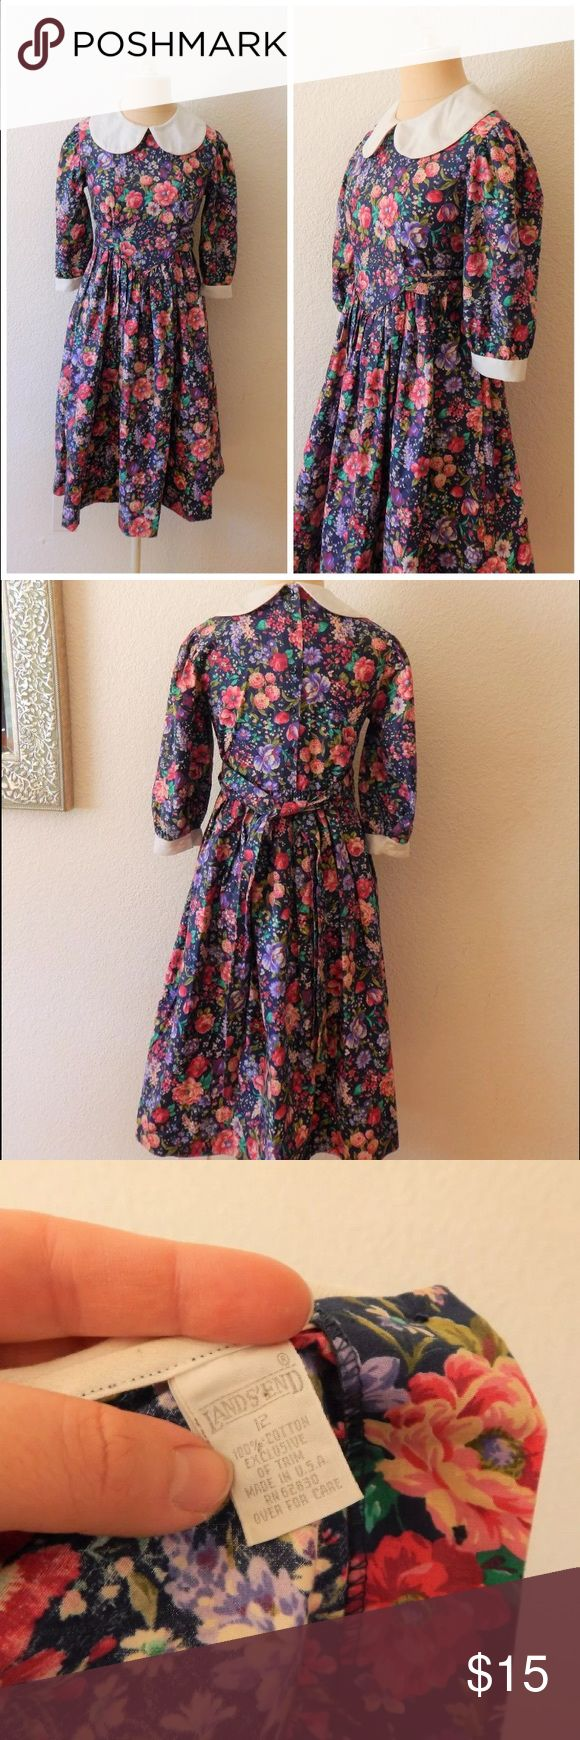 "Vintage Lands End Girls Floral Prairie Dress Vintage Lands End Girls Peter Pan Collar Floral Modest Prairie Dress  Button Back  Tie Waist 100% Cotton Made USA Machine Wash Tumble Dry Tag Size 12  -- shown on adult size 0-2   Bust circumference: 31"" Waist circumference: 33"" Hip circumference: open Length: 40"" Vintage Dresses Casual"